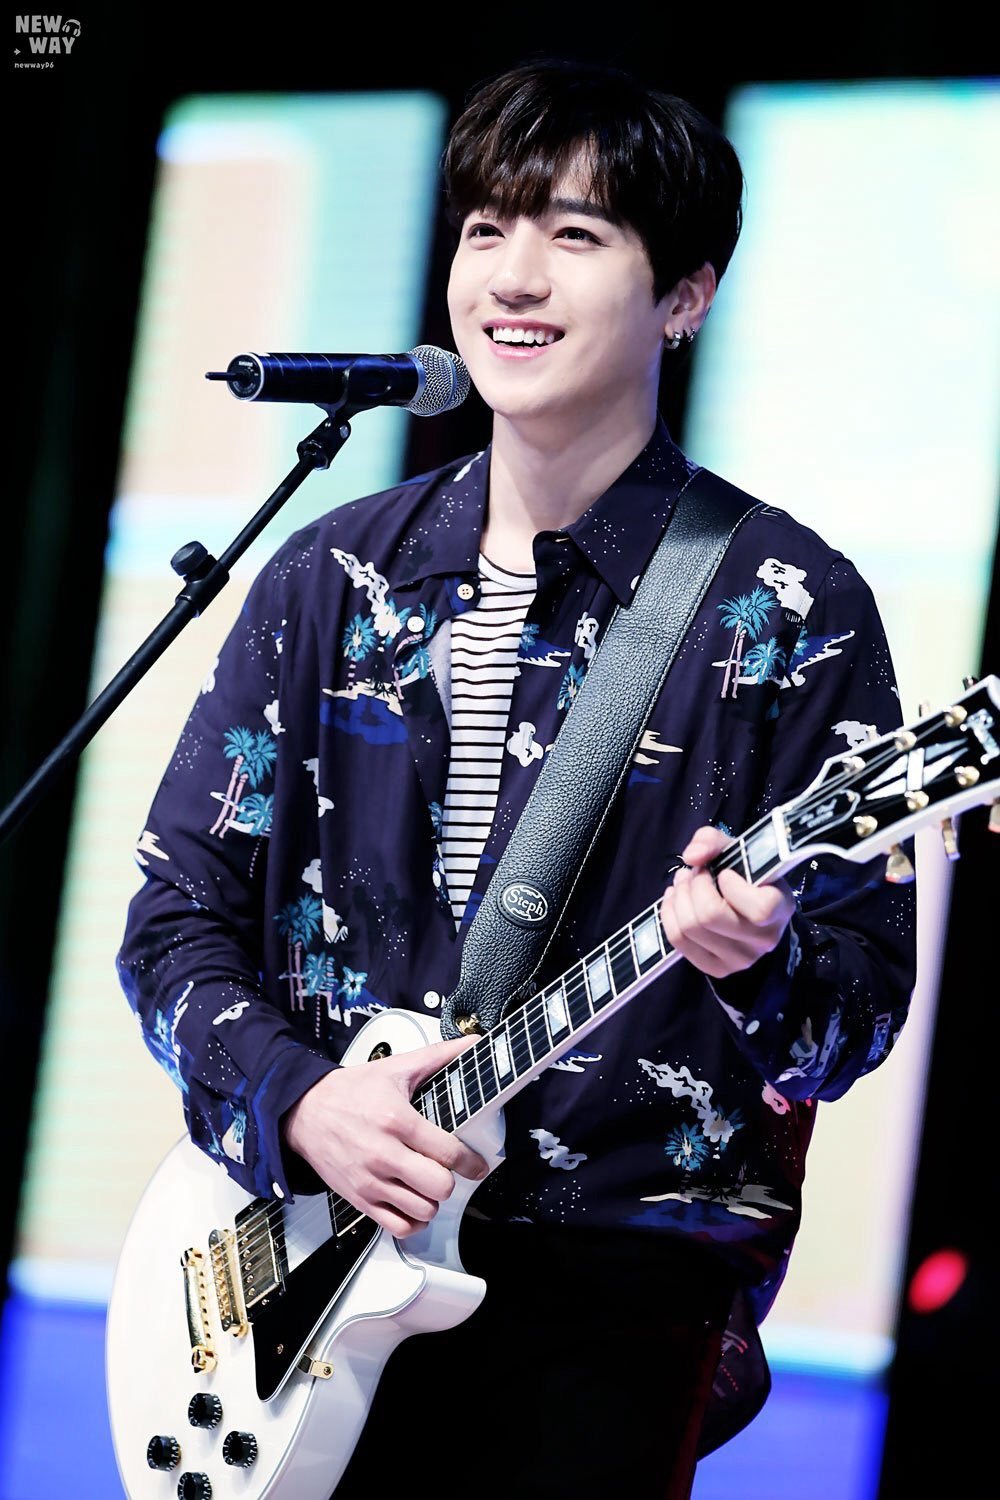 day6, day6 height, day6 tallest, day6 shortest, day6 members, day6 facts, day6 sungjin, sungjin